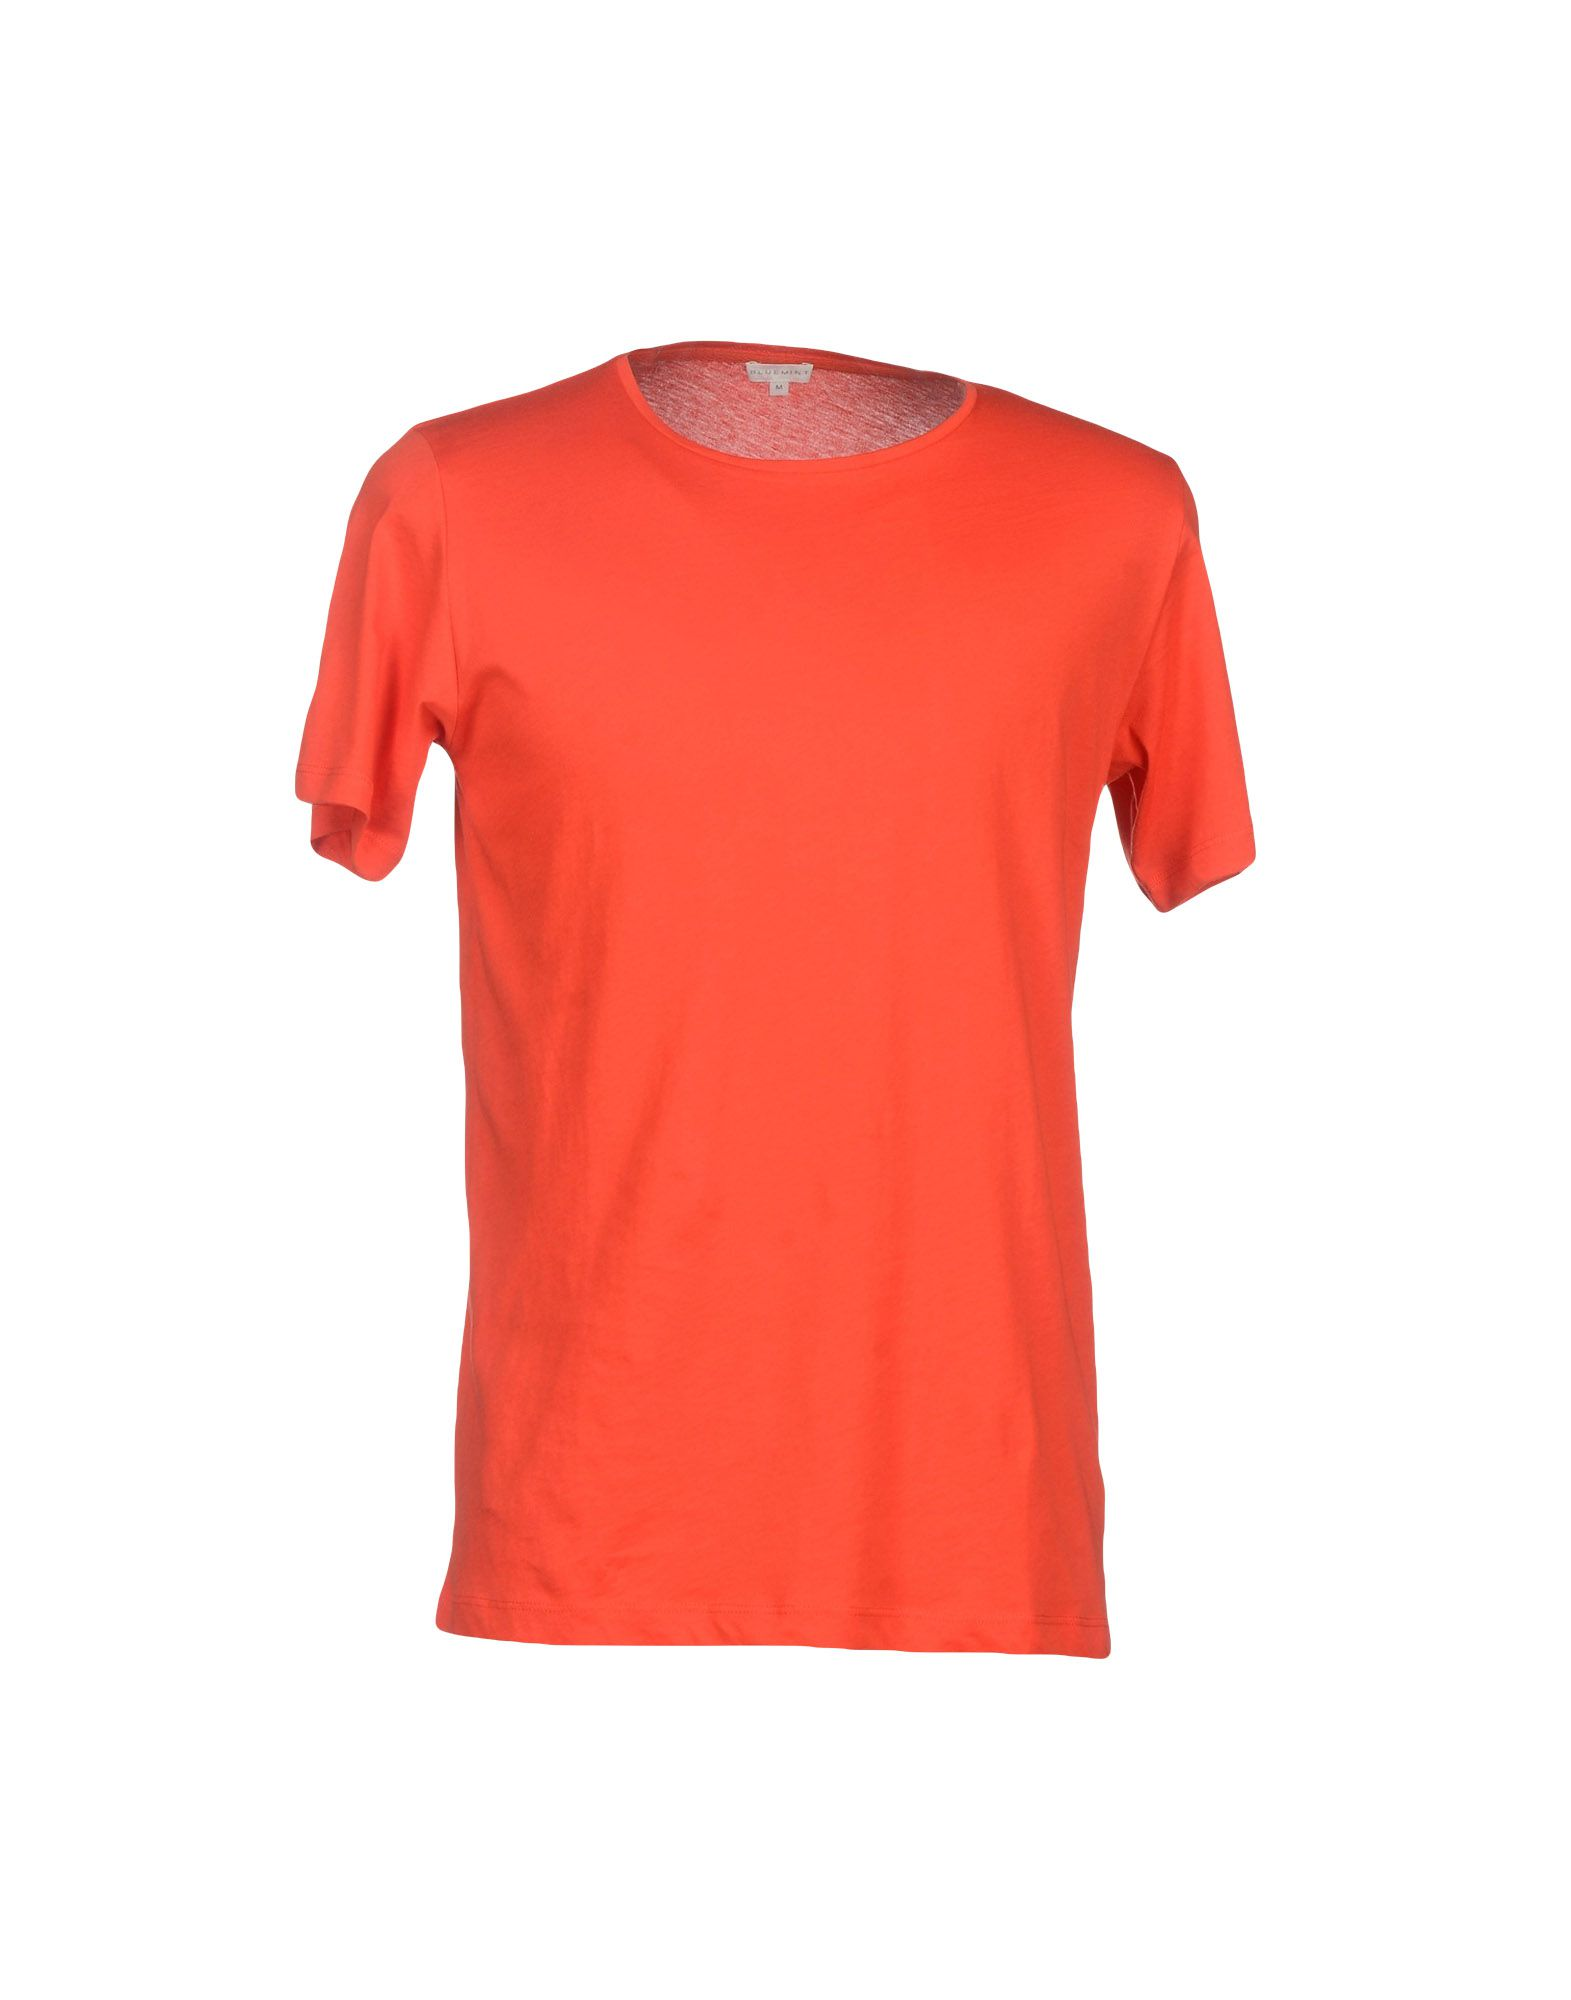 BLUEMINT T-Shirt in Red